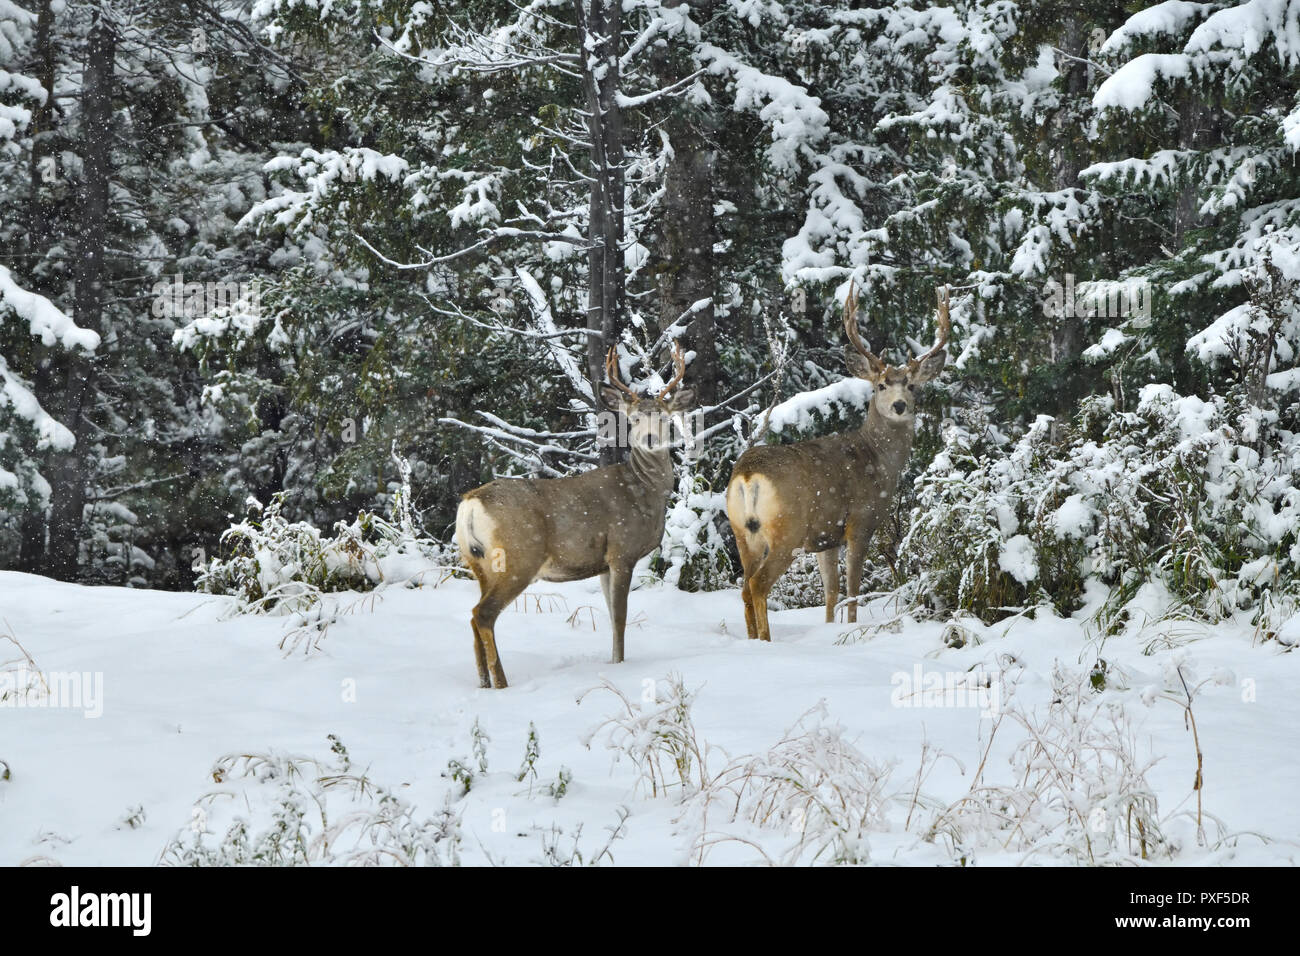 Two mule deer bucks 'Odocoileus hemionus', standing on the edge of thier forest habitat in the winters first snow in rural Alberta Canada. - Stock Image